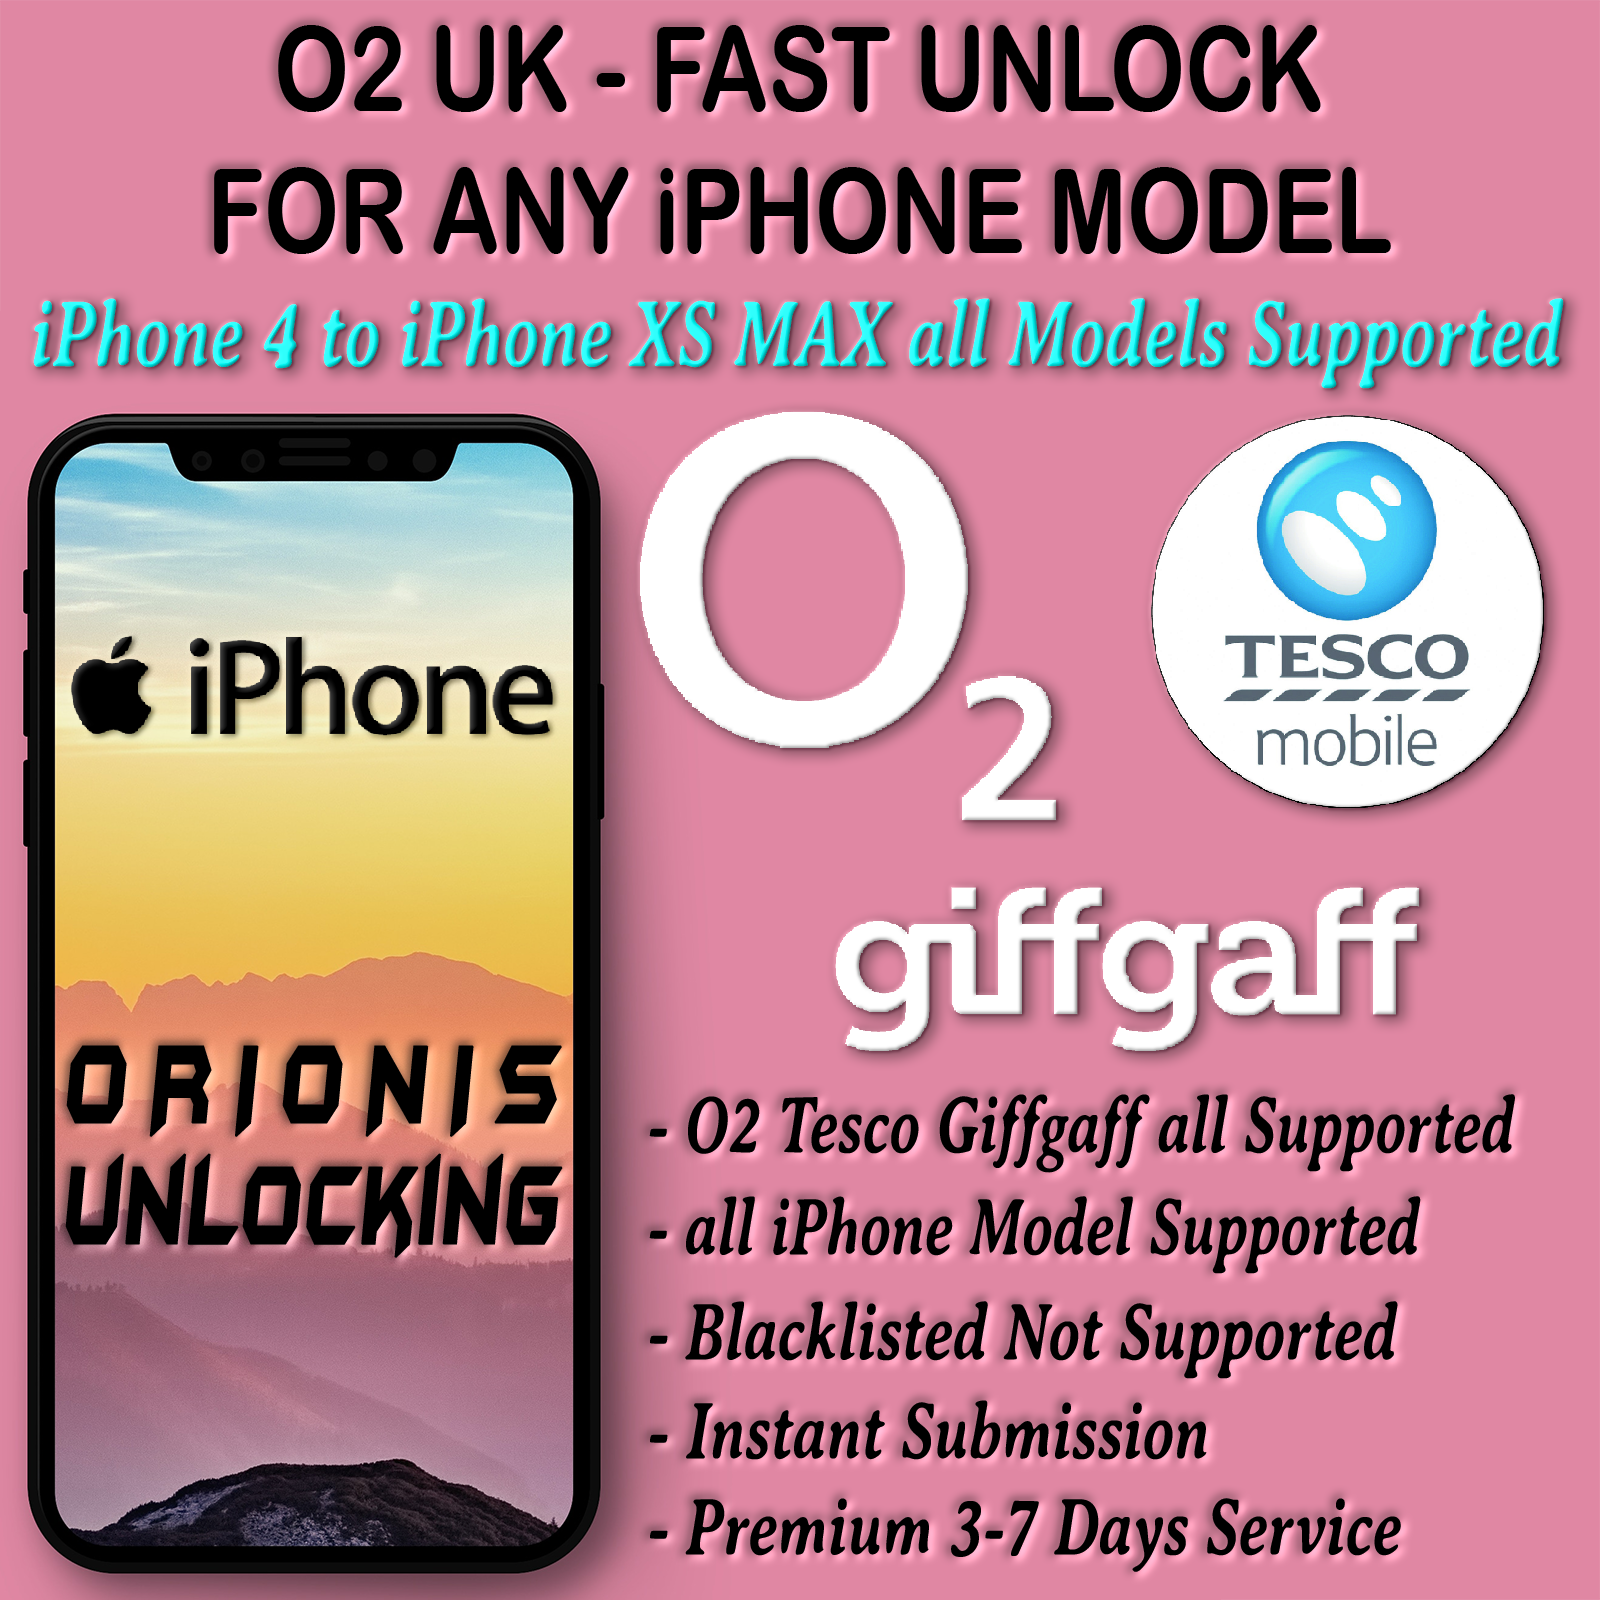 UK O2 Tesco GiffGaff iPhone (all iPhone Supported, 1-3 Days)